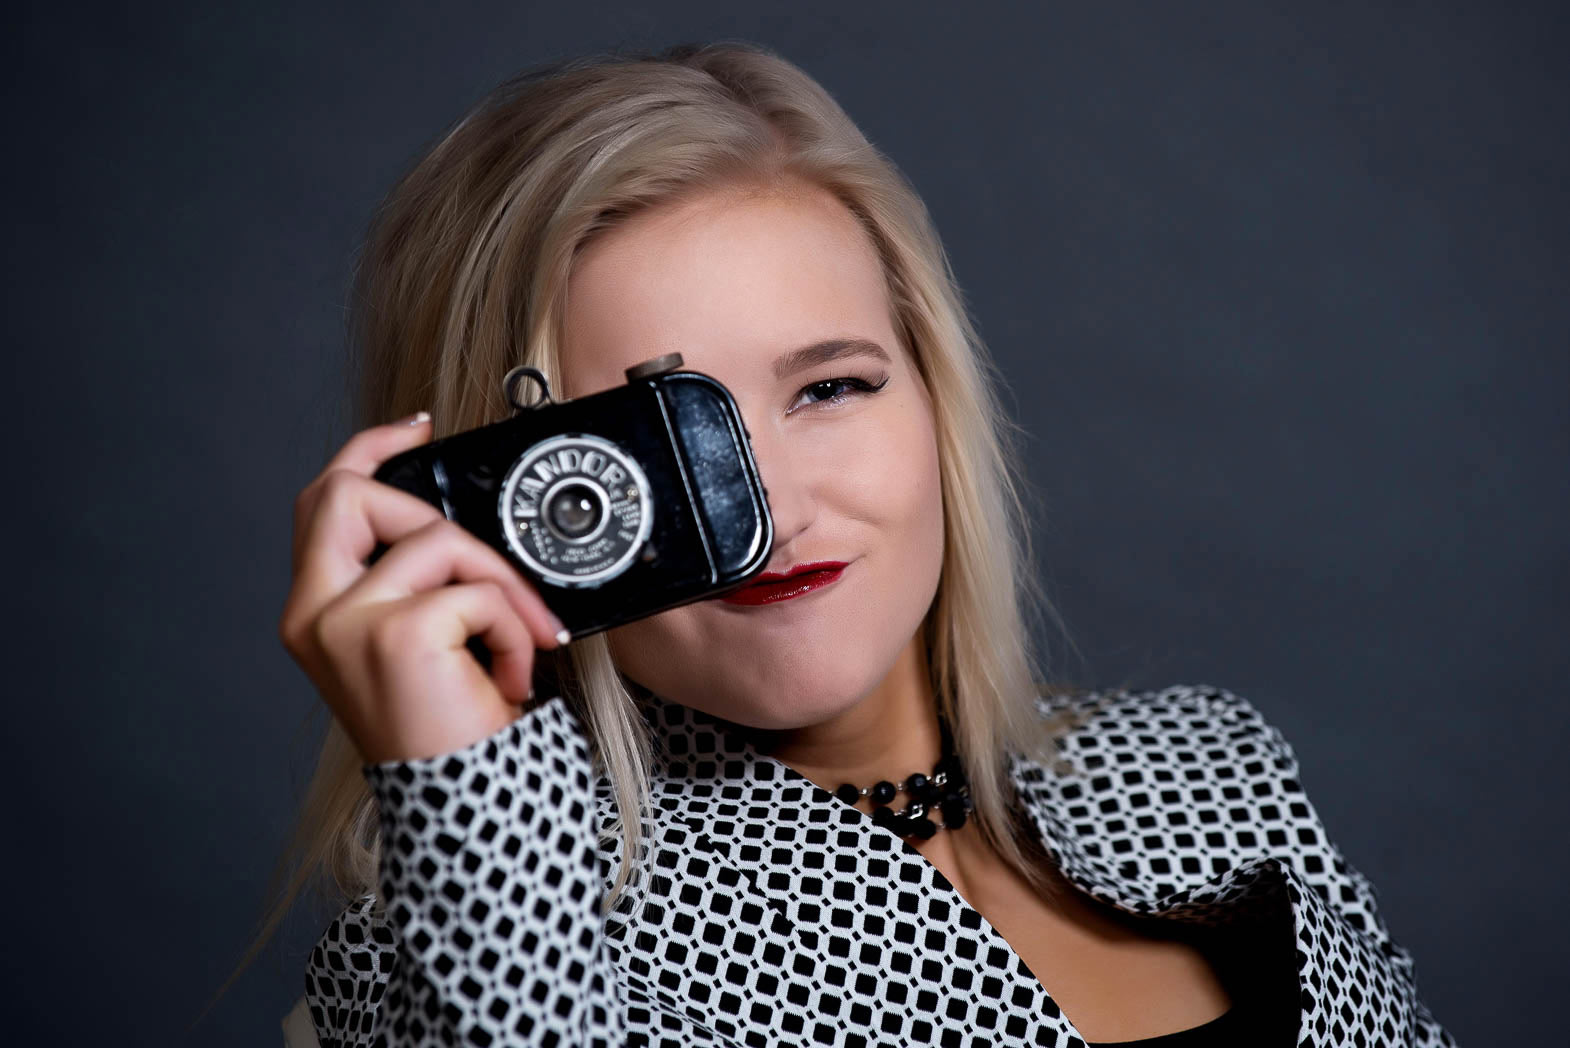 senior girl smiling holding a vintage camera during studio model shoot